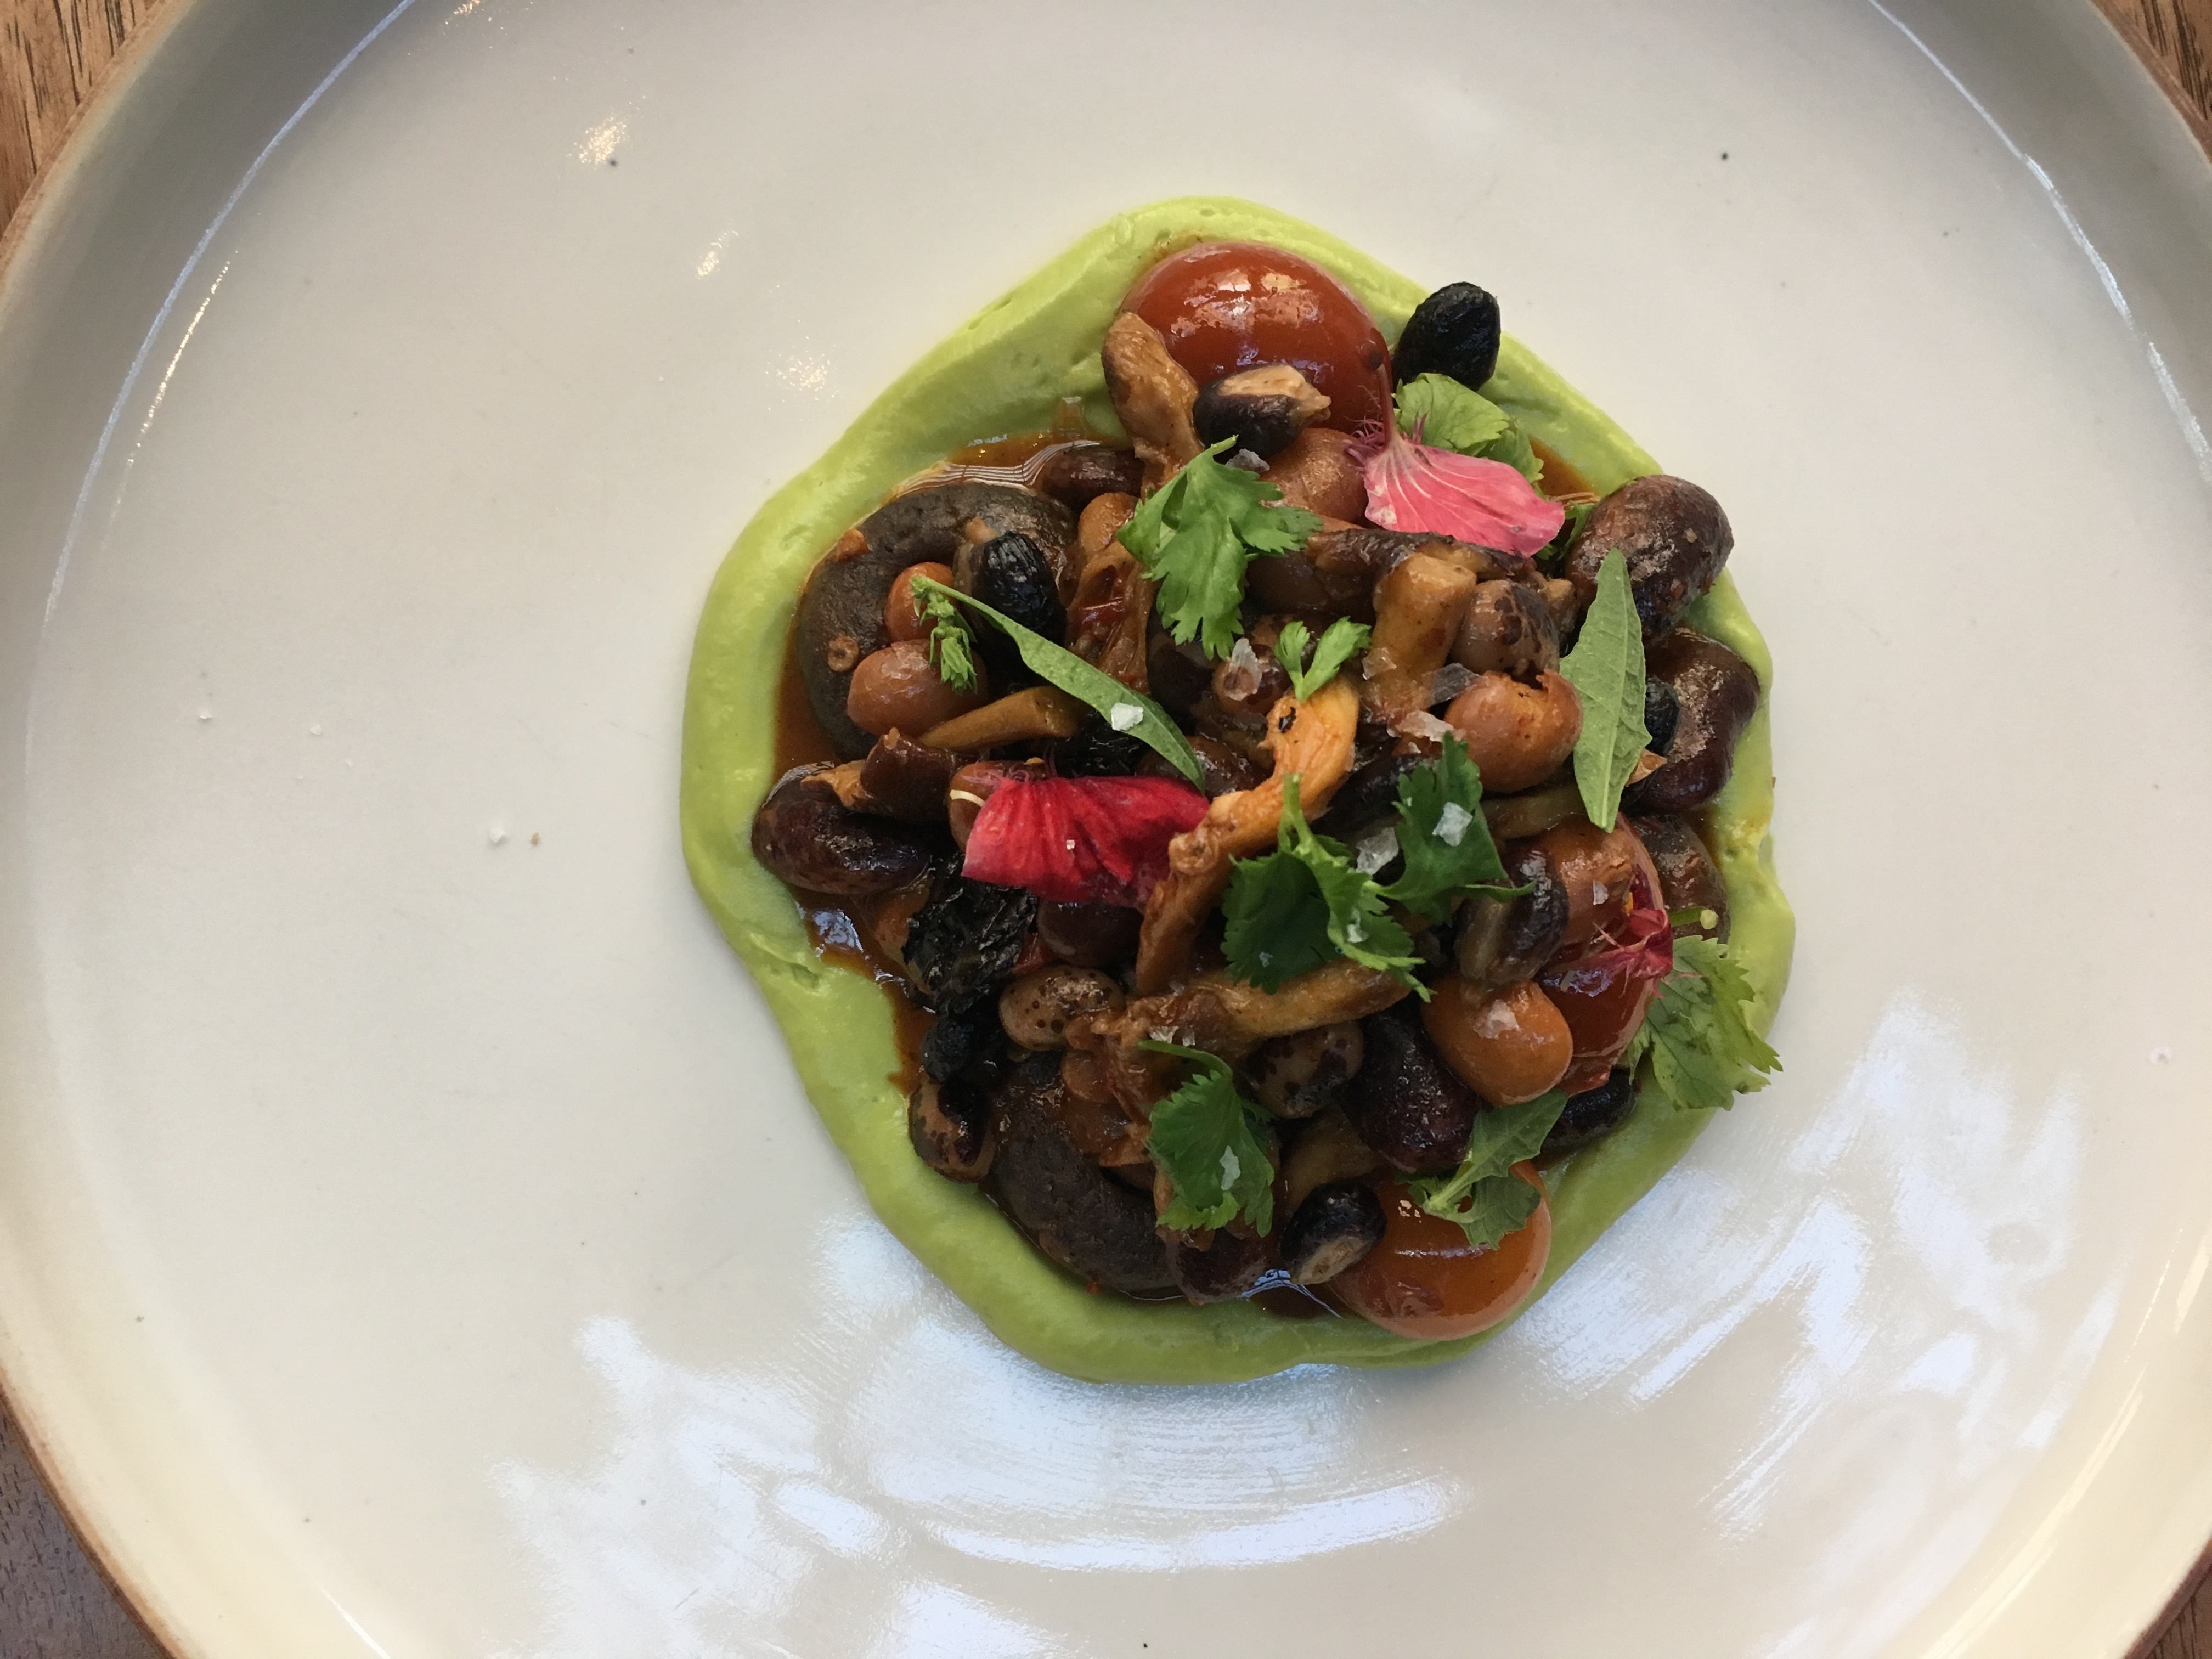 The beans, masa chochoyotes, and mushroom dish from Comedor